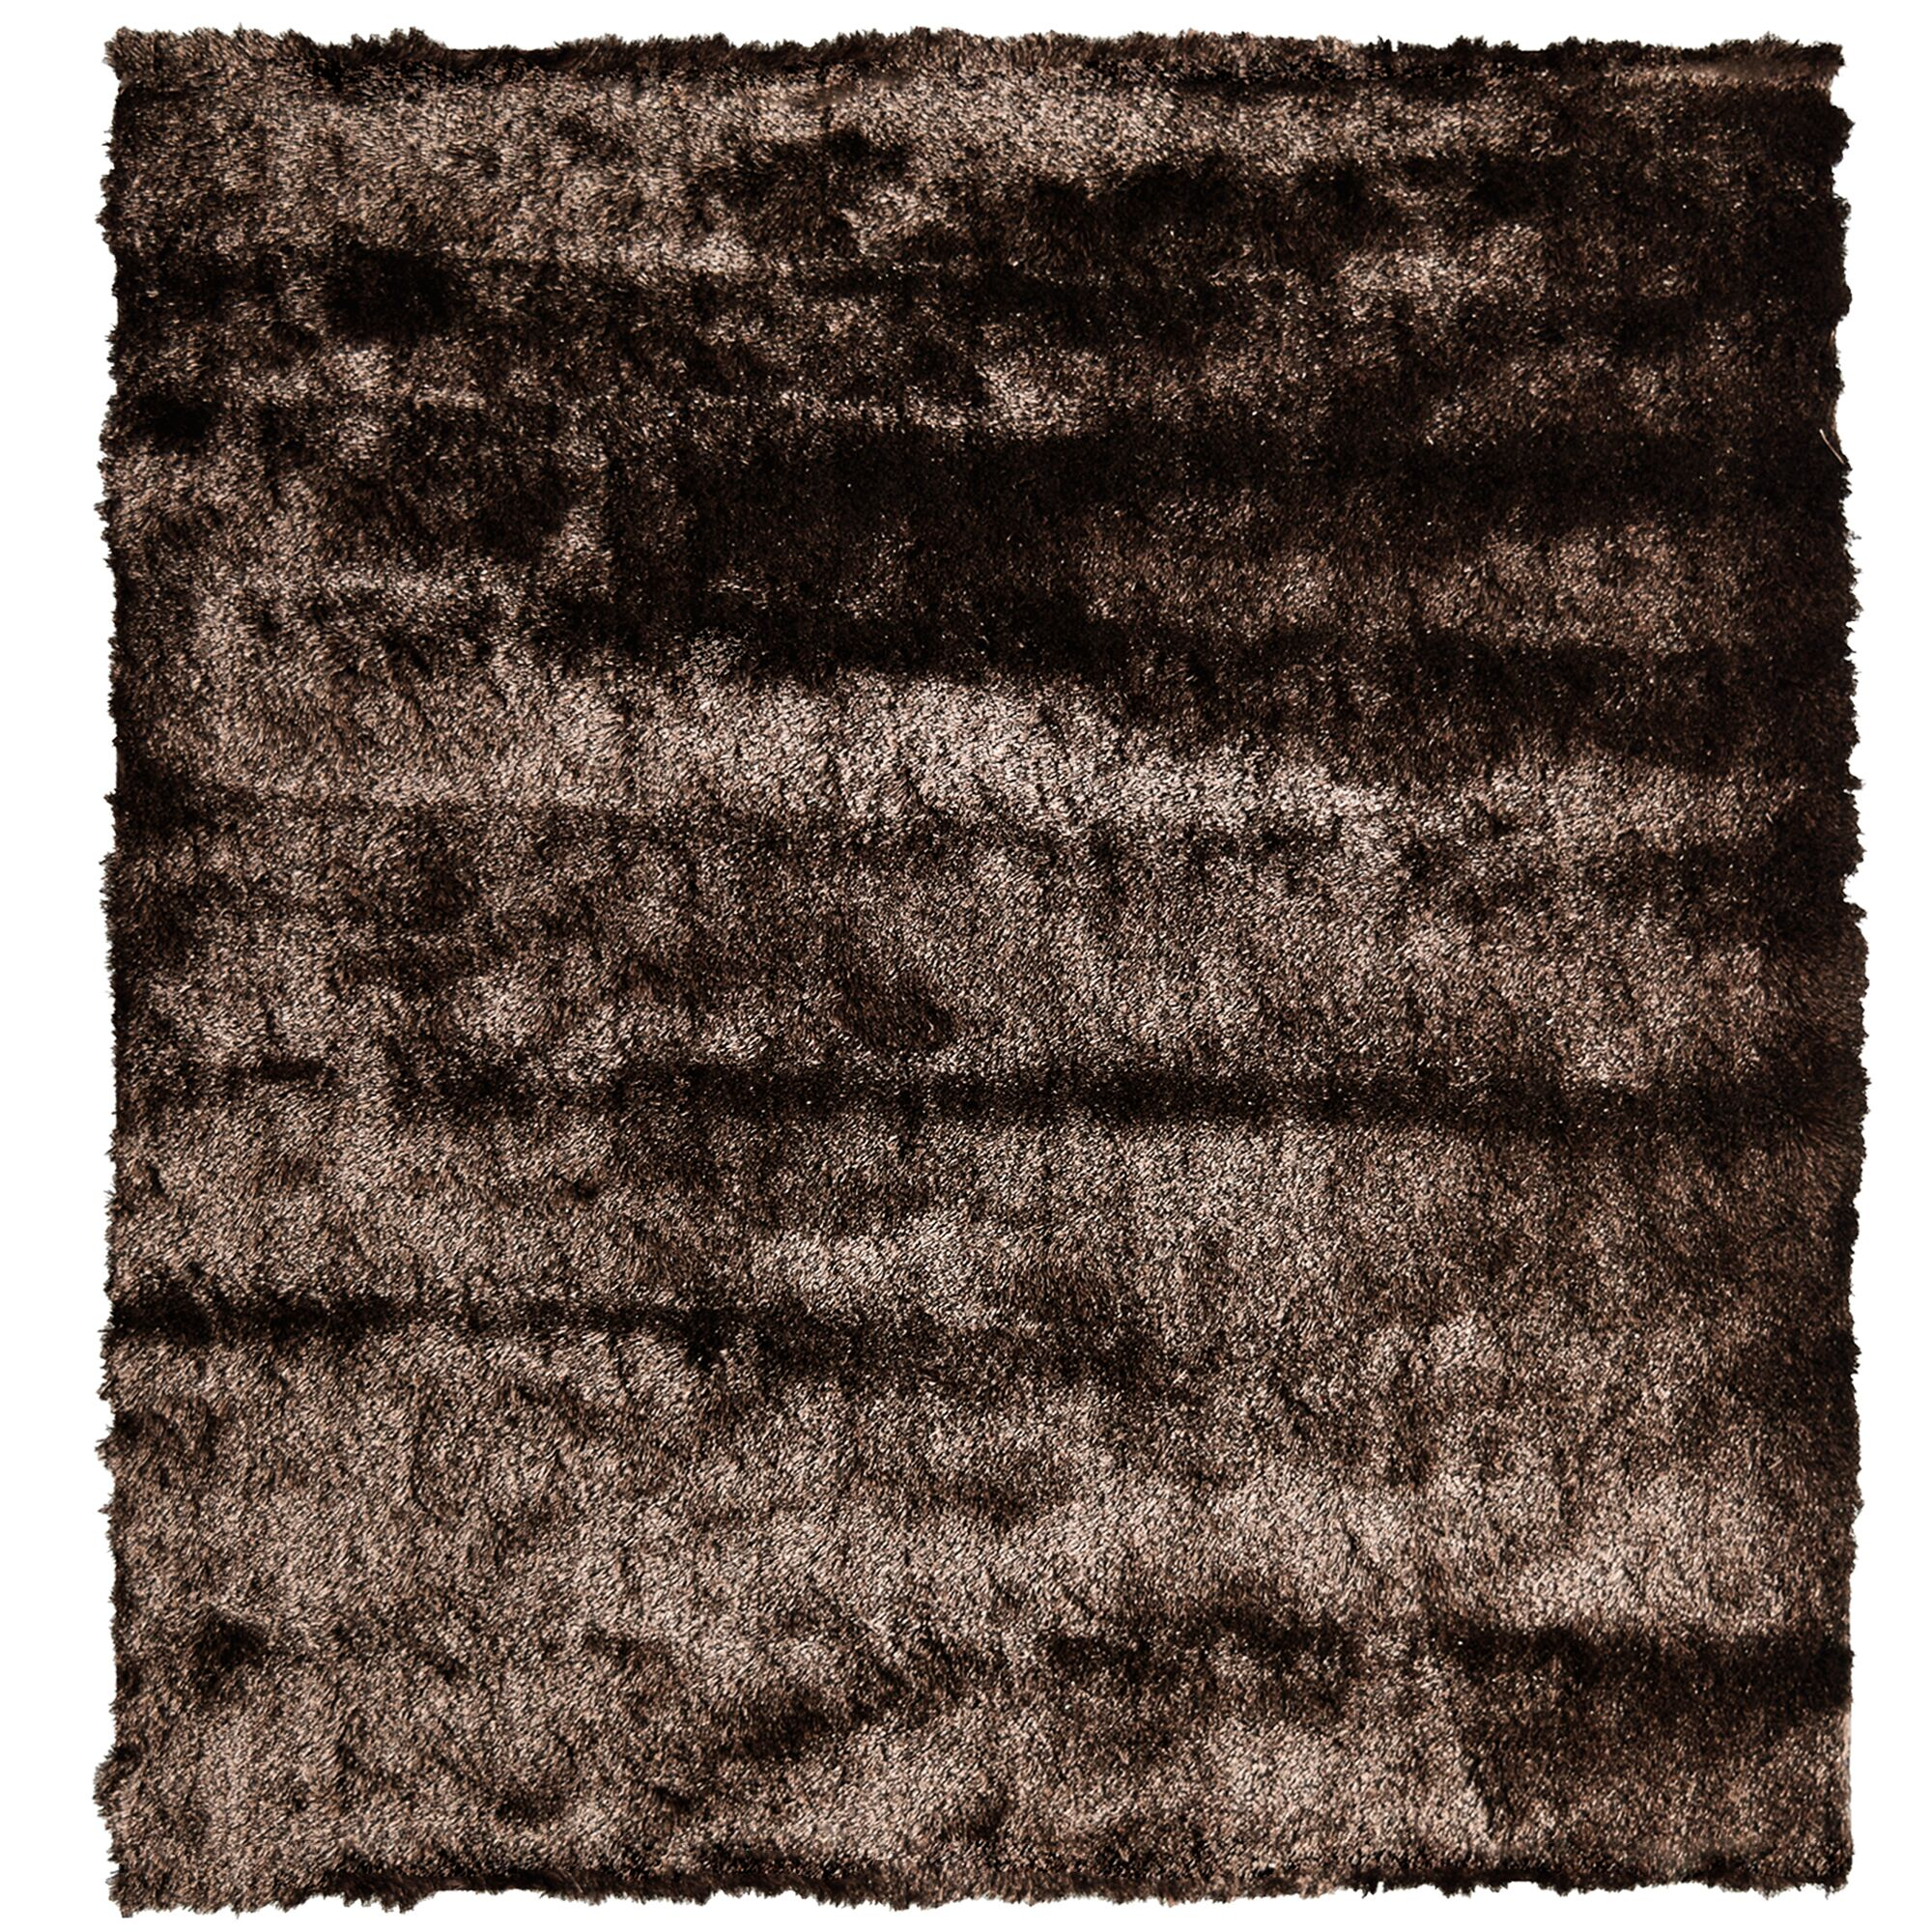 Moonlight Path Chocolate Area Rug Rug Size: Square 5'